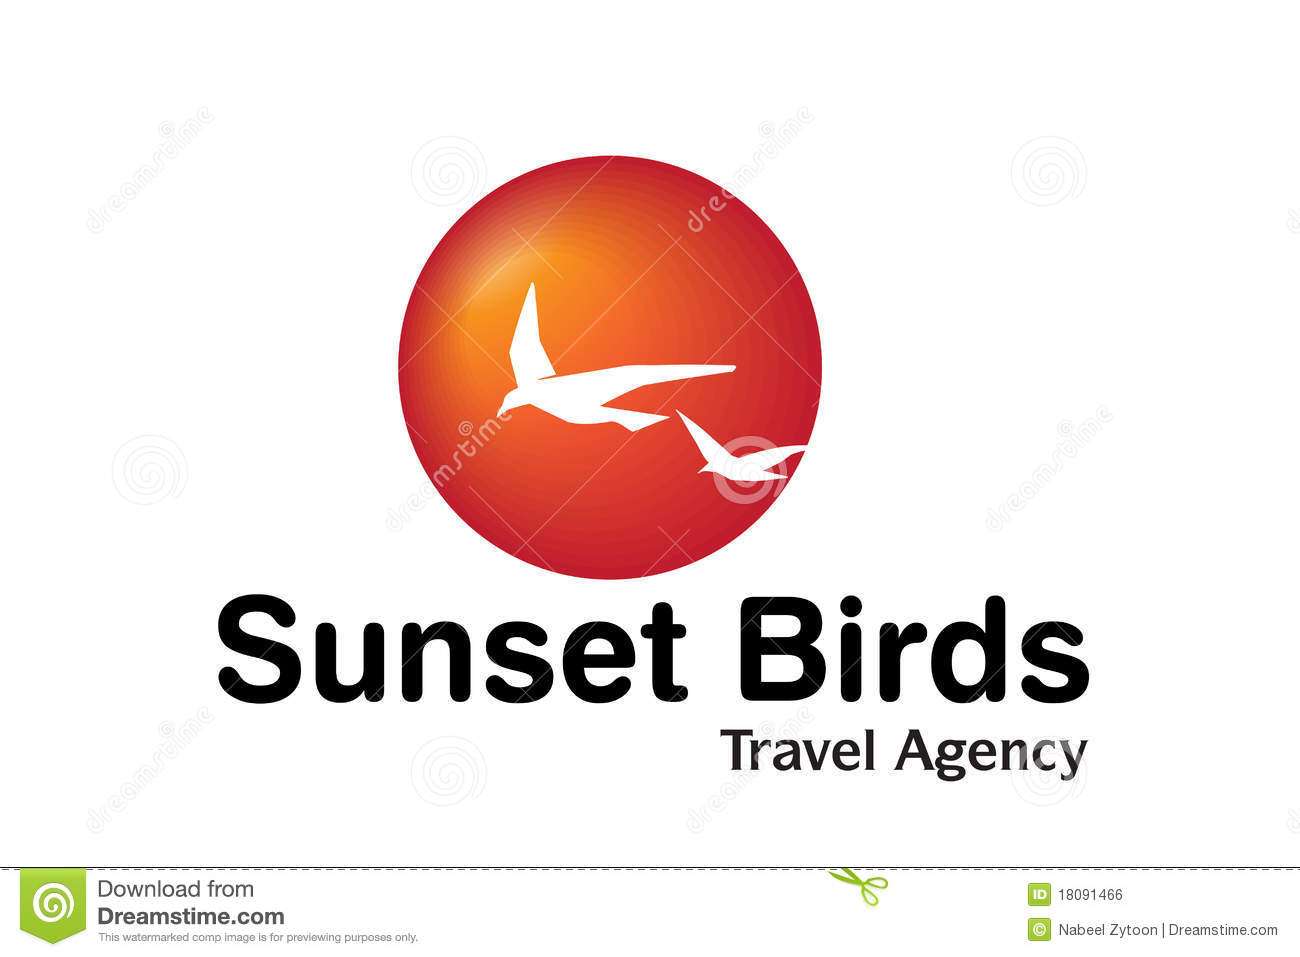 Travel agency logo design stock illustration image of for Design agency